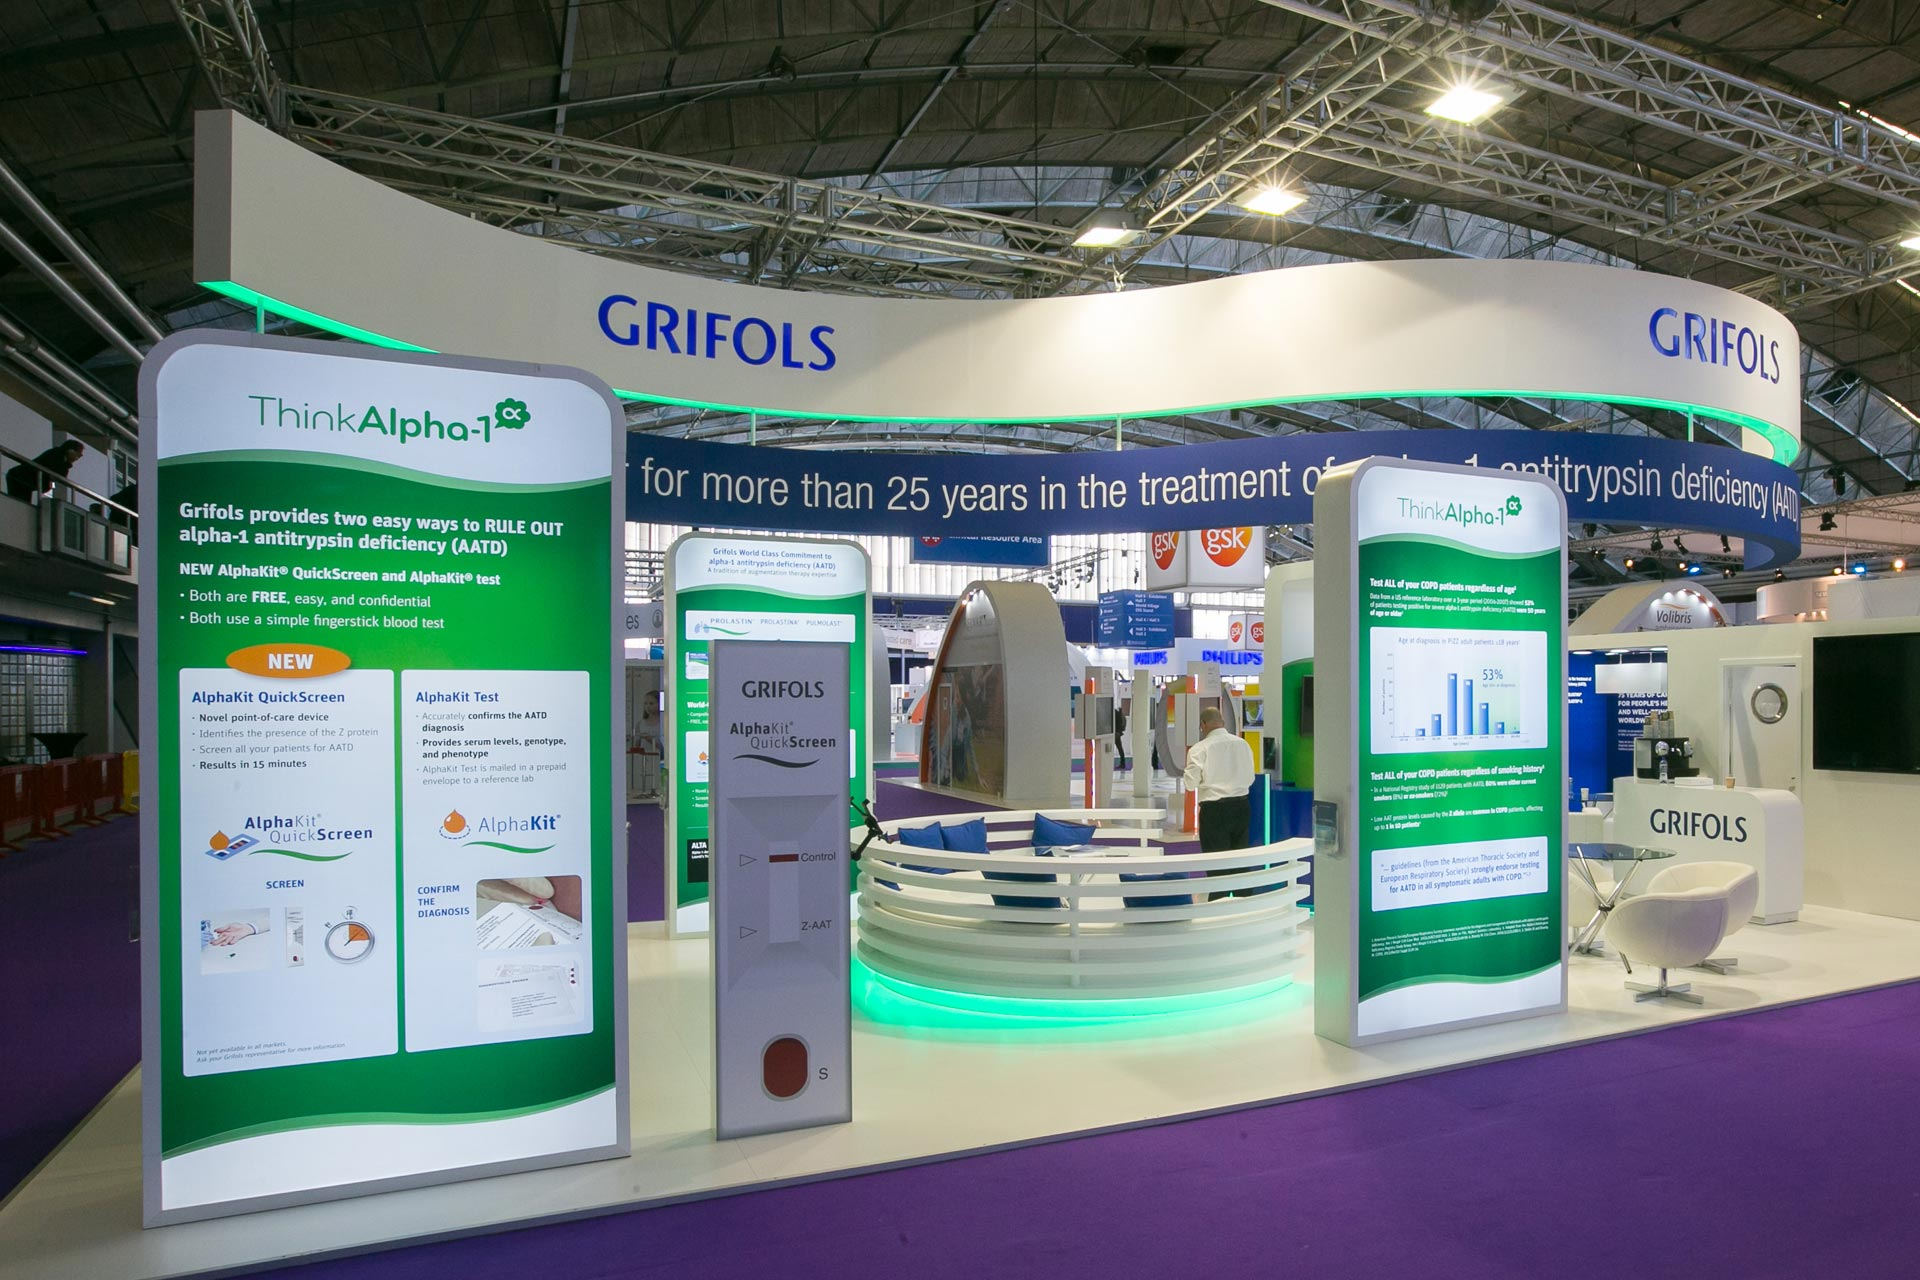 GRIFOLS ERS Amsterdam 2015 - PRO EXPO Exhibition Stand